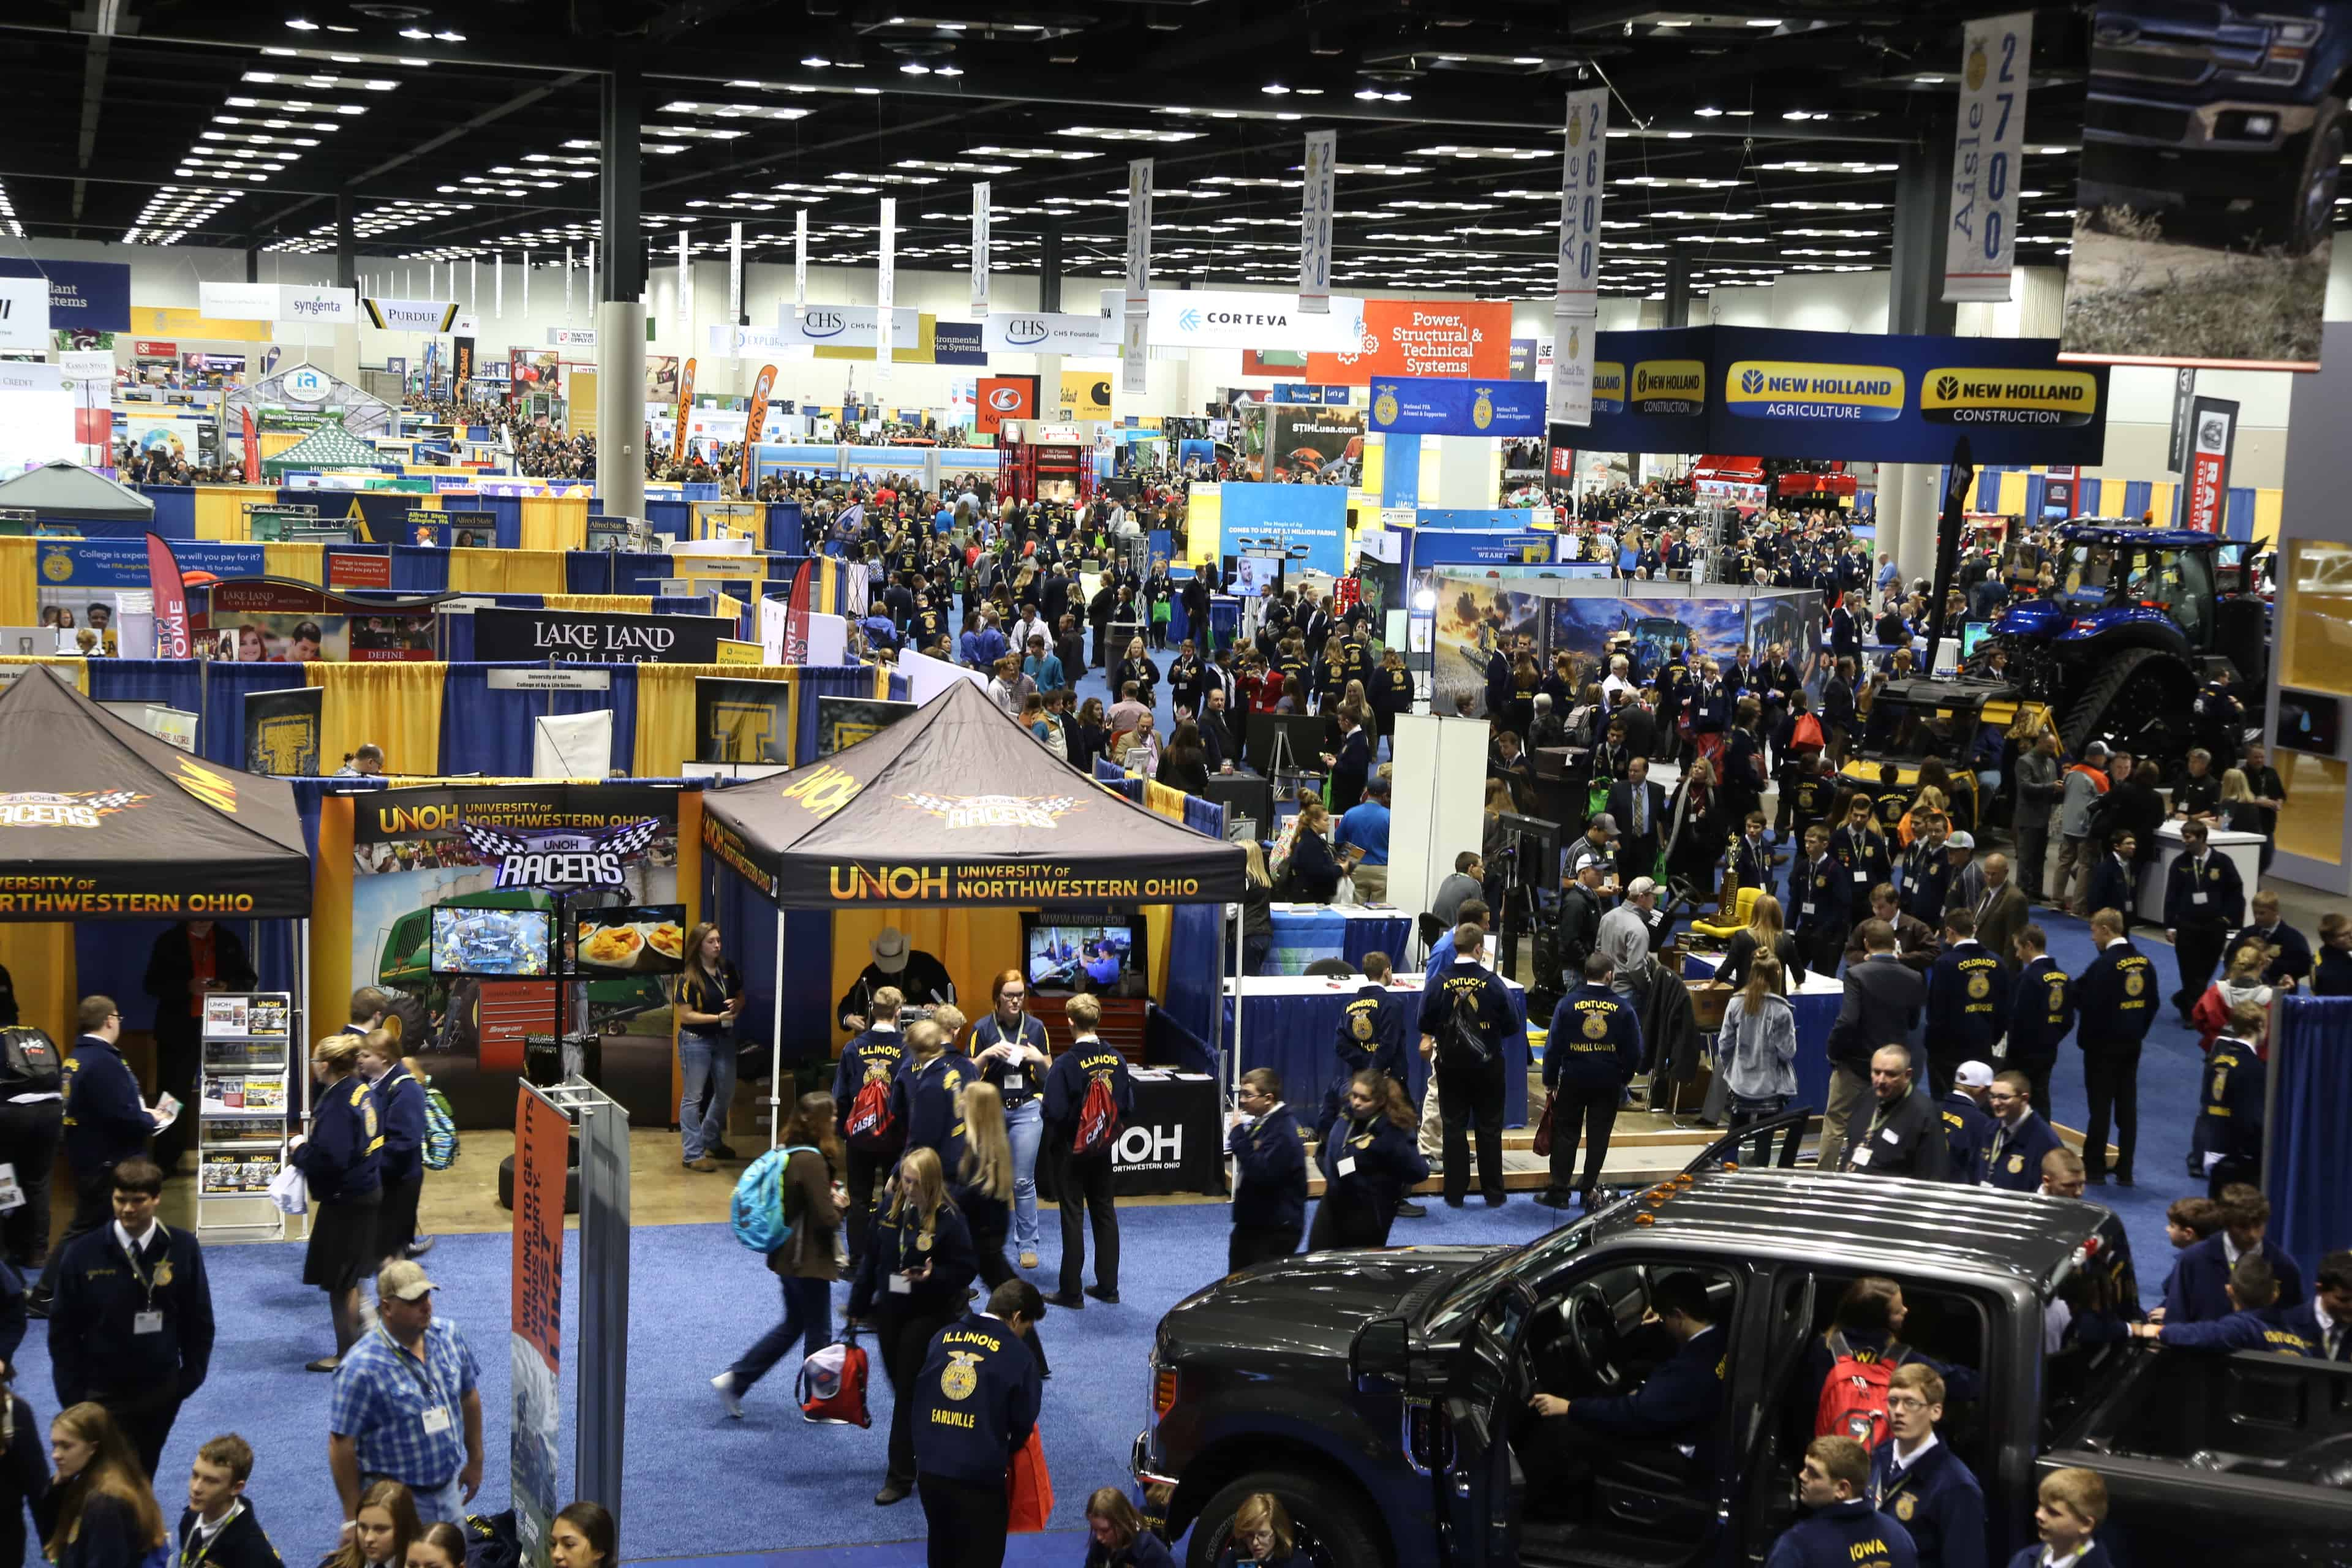 A broad view of the National FFA Expo inside the Indiana Convention Center.